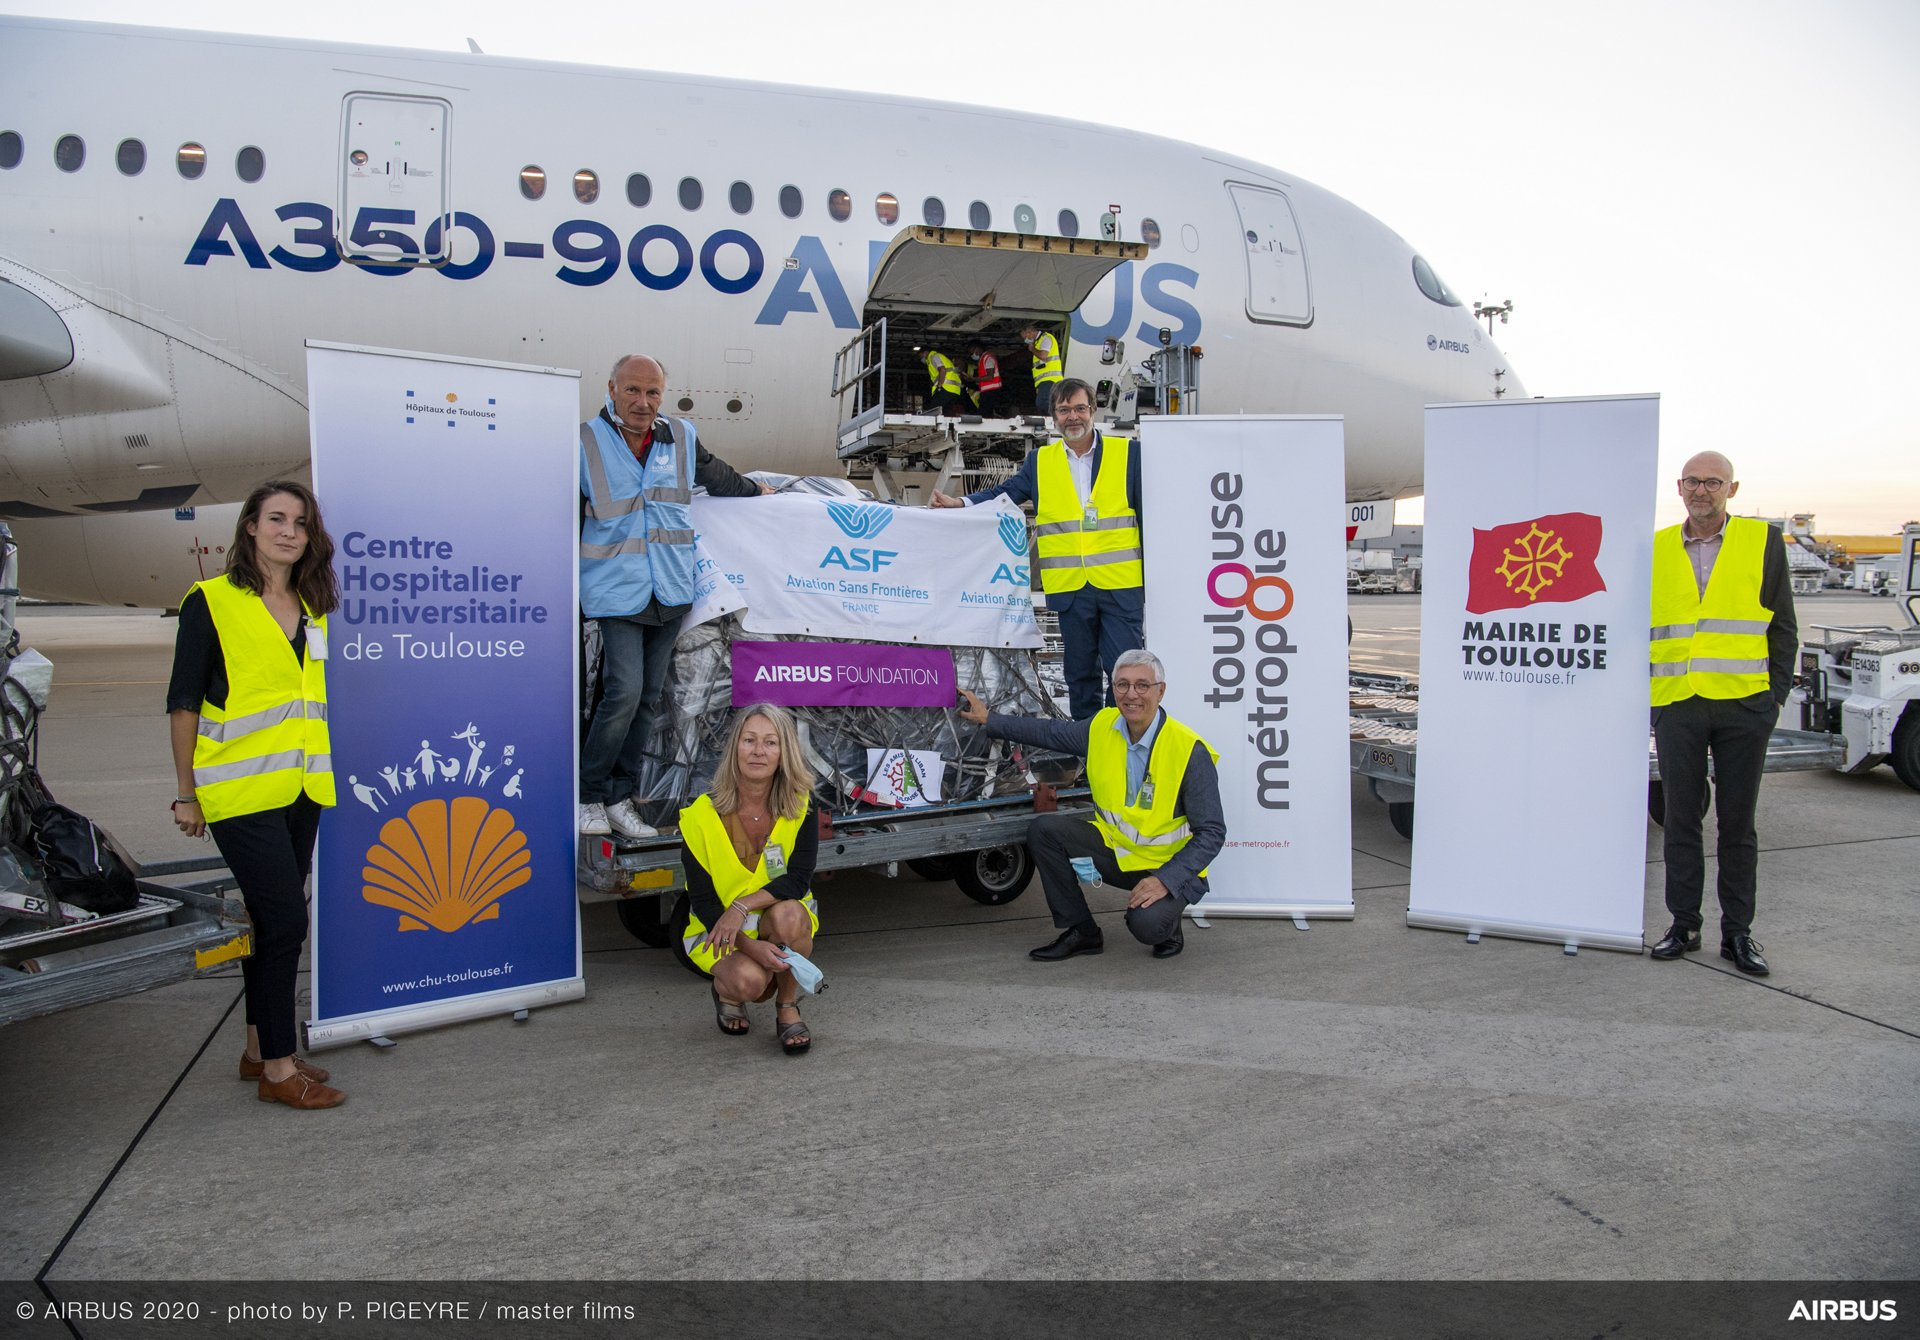 Representatives of the partner organizations during the loading of the A350 XWB at Toulouse Airport with relief items for Beirut